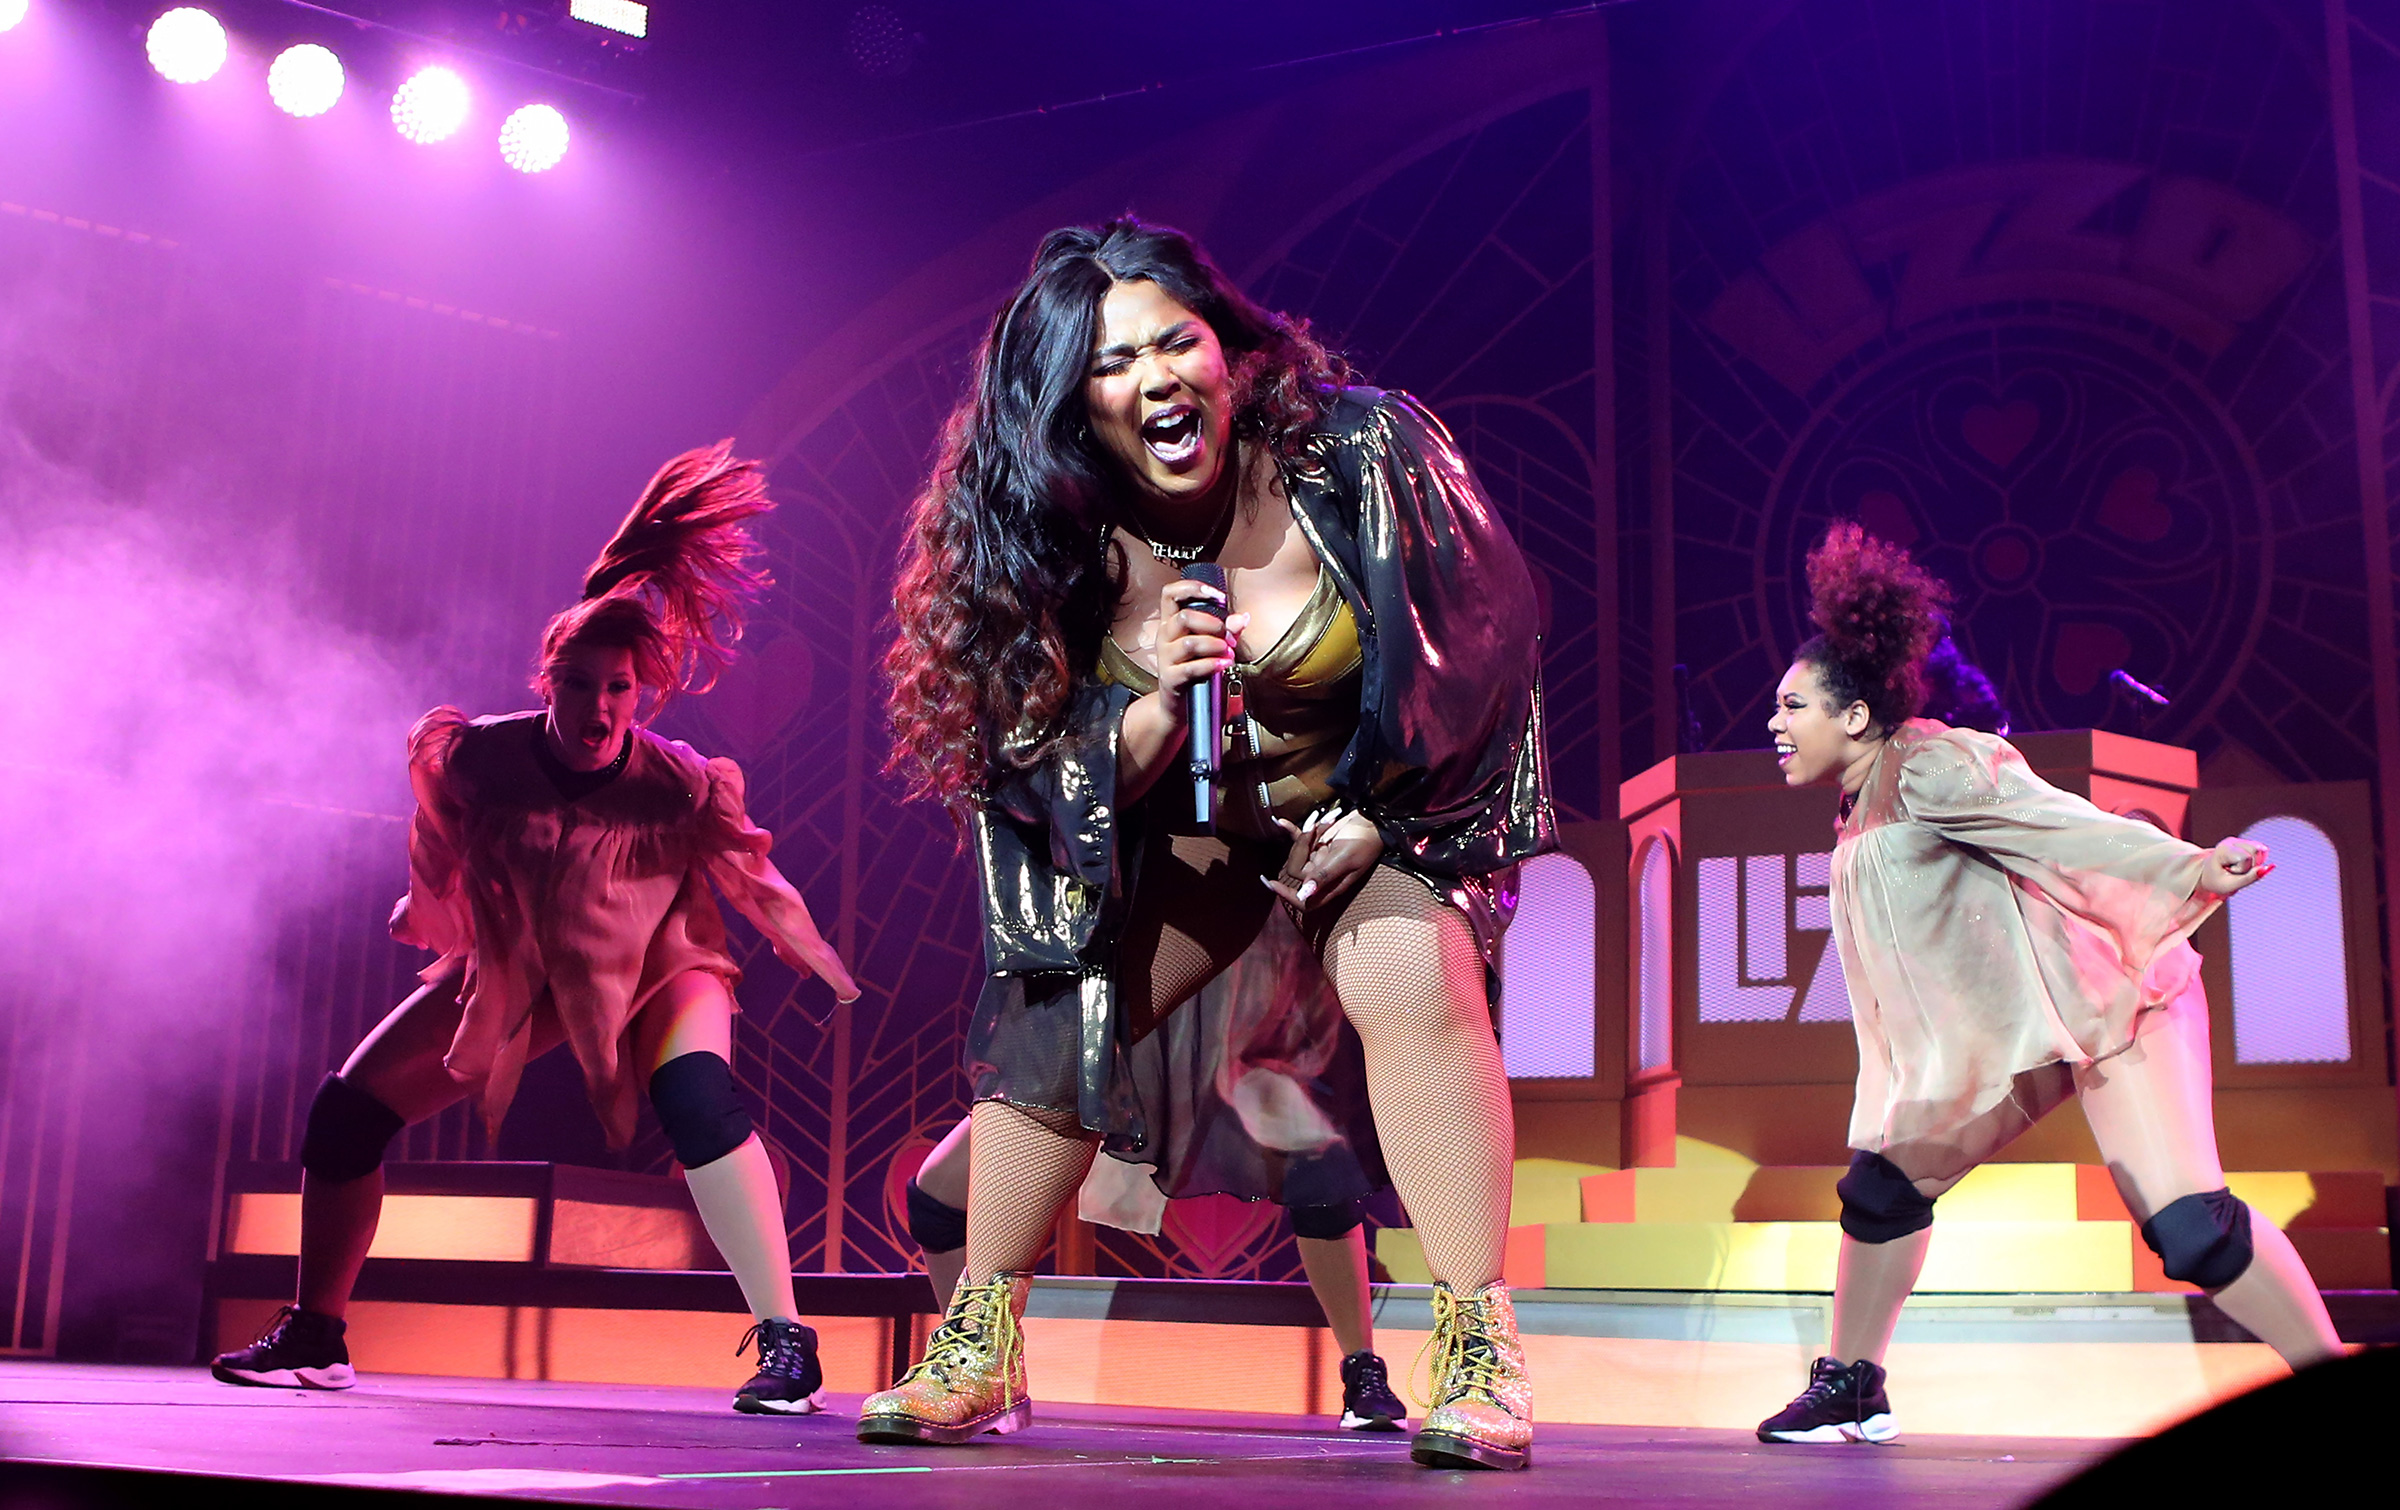 Lizzo performs with her dancers in London on Nov. 6